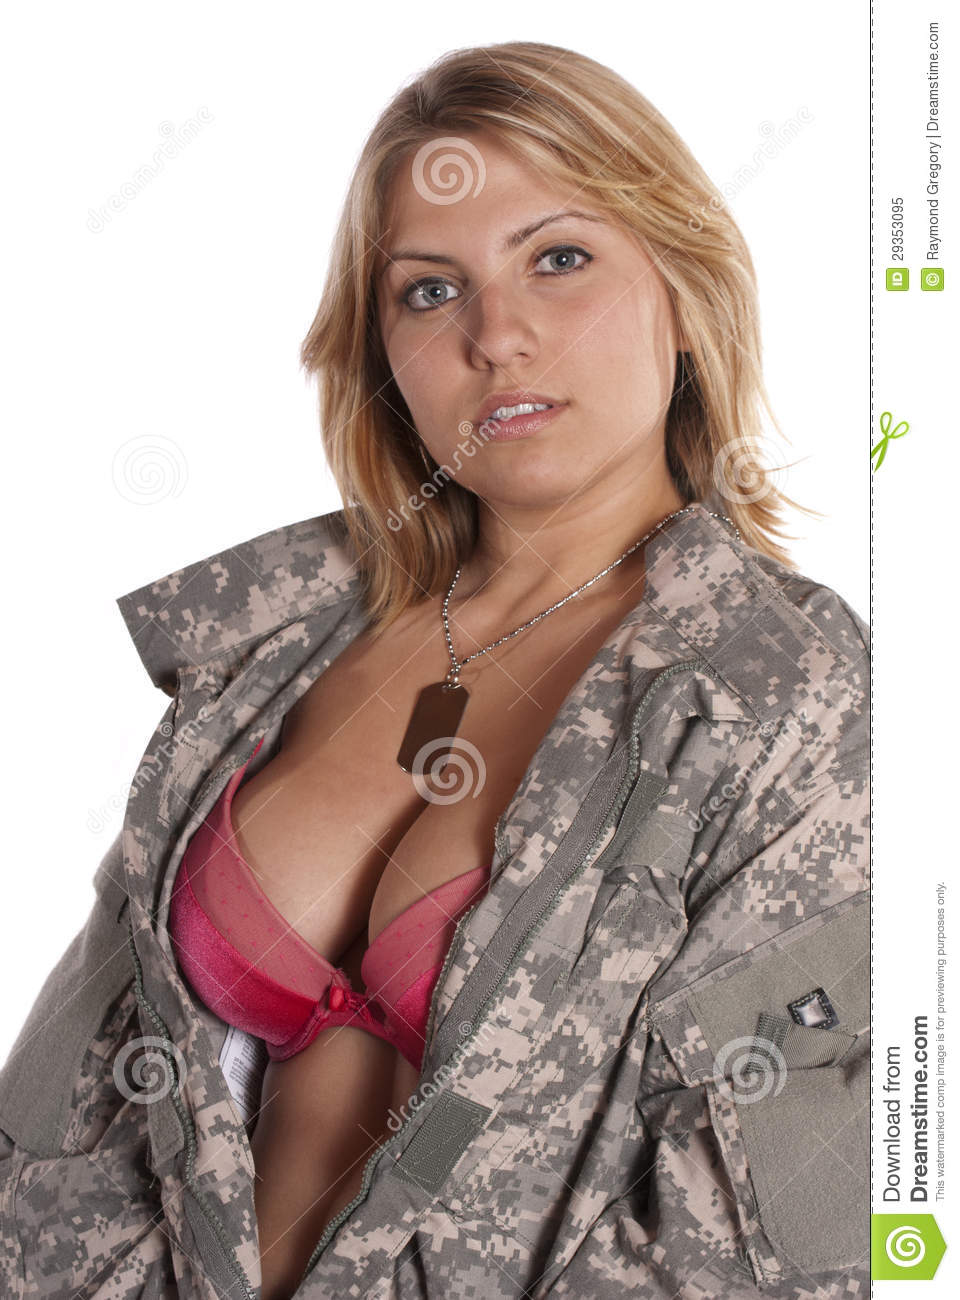 Pin Up Girl Implied Nude Military Uniform Stock Image ...